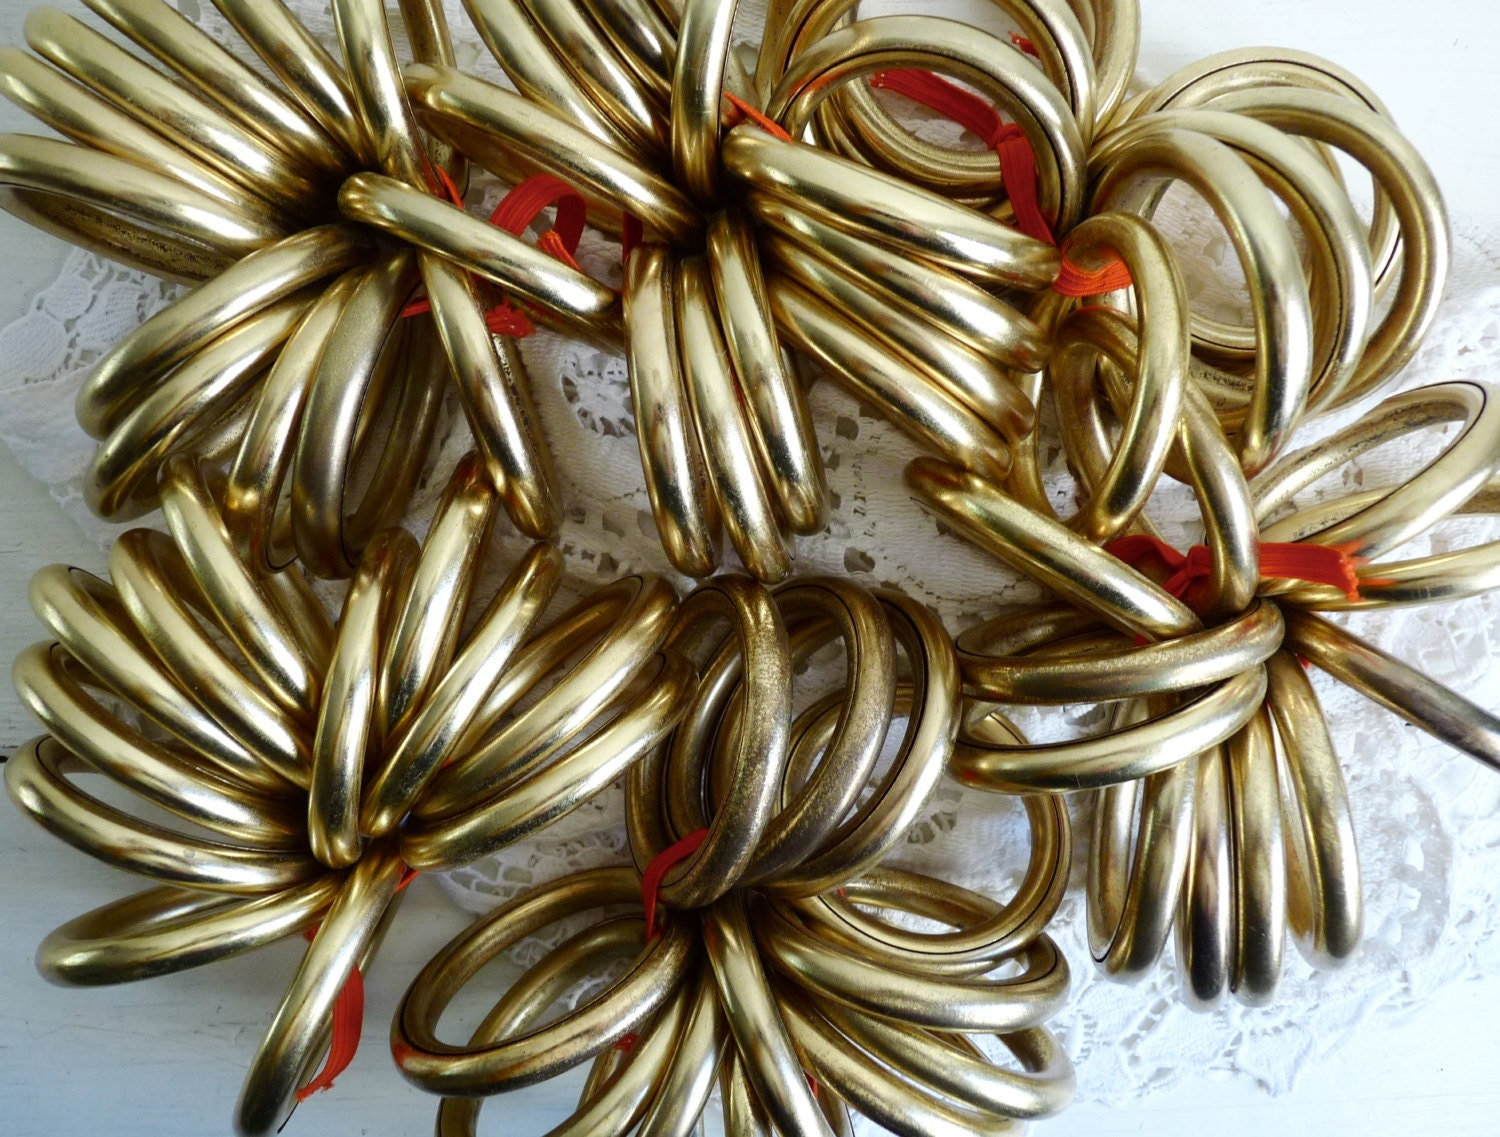 Vintage French Brass Curtain Rings 12 Pieces Gold Toned